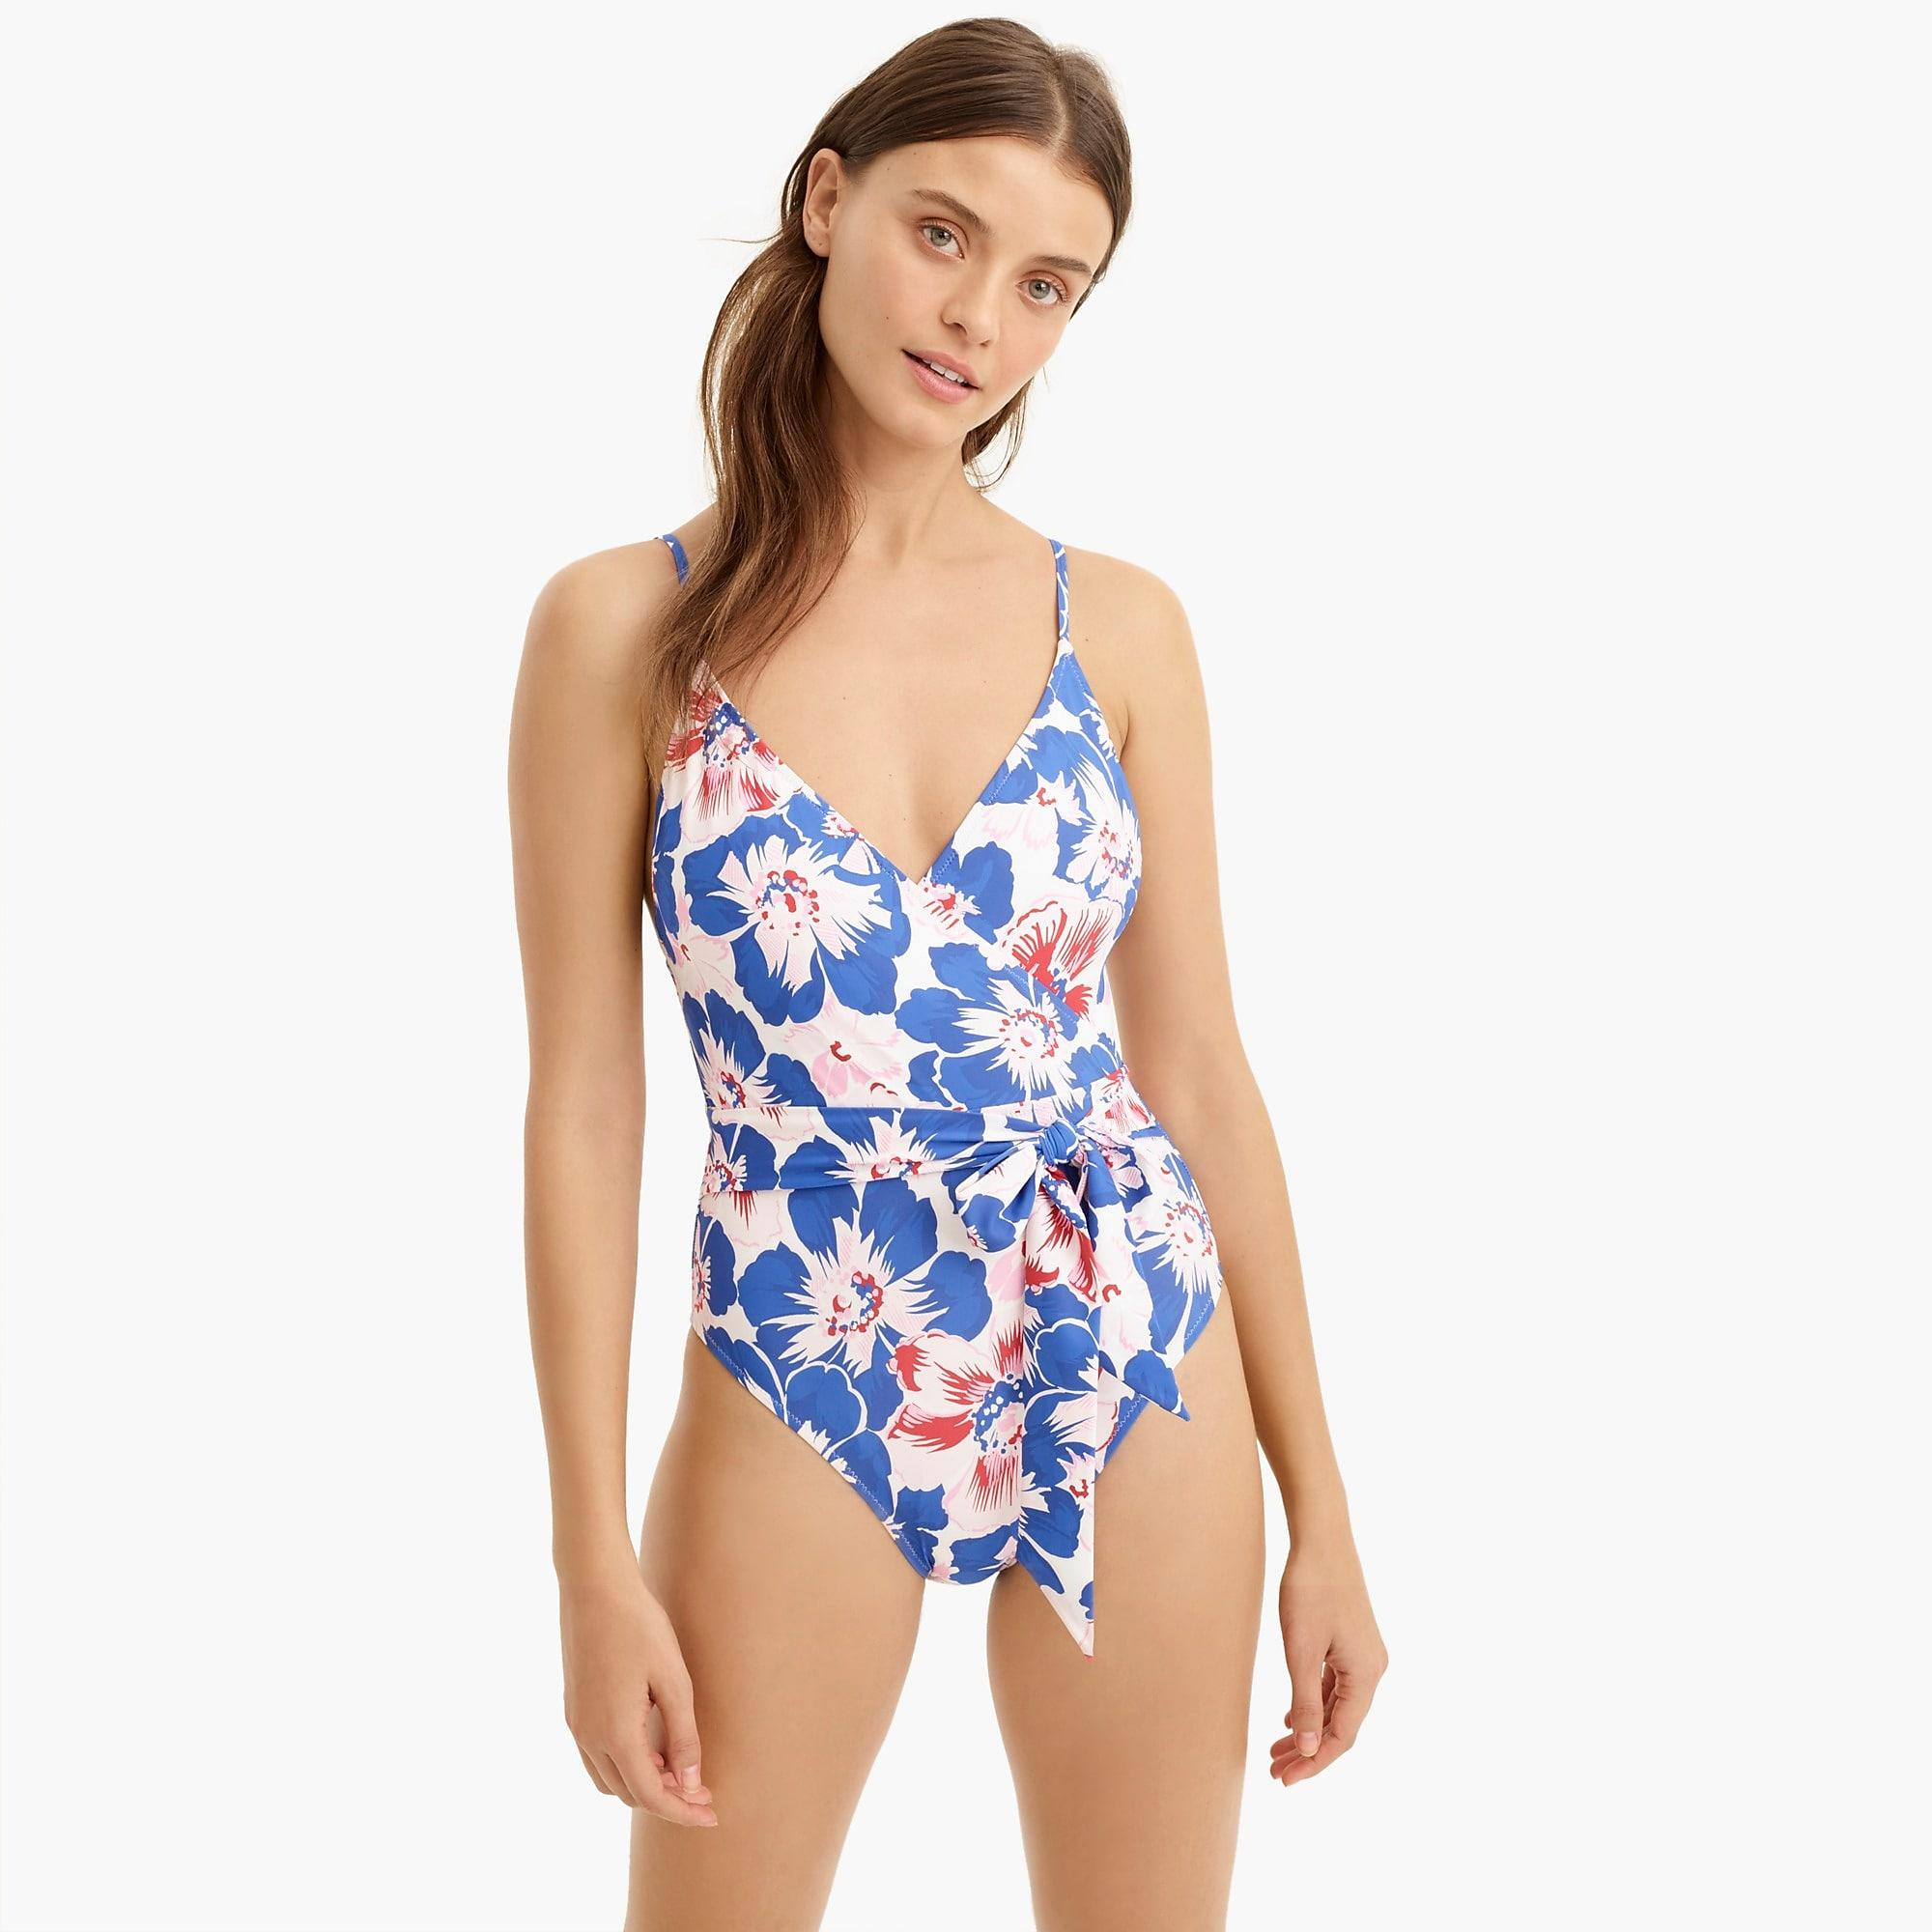 380e488792 J.Crew - Blue Eco V-neck Wrap One-piece Swimsuit In Pansy. View fullscreen